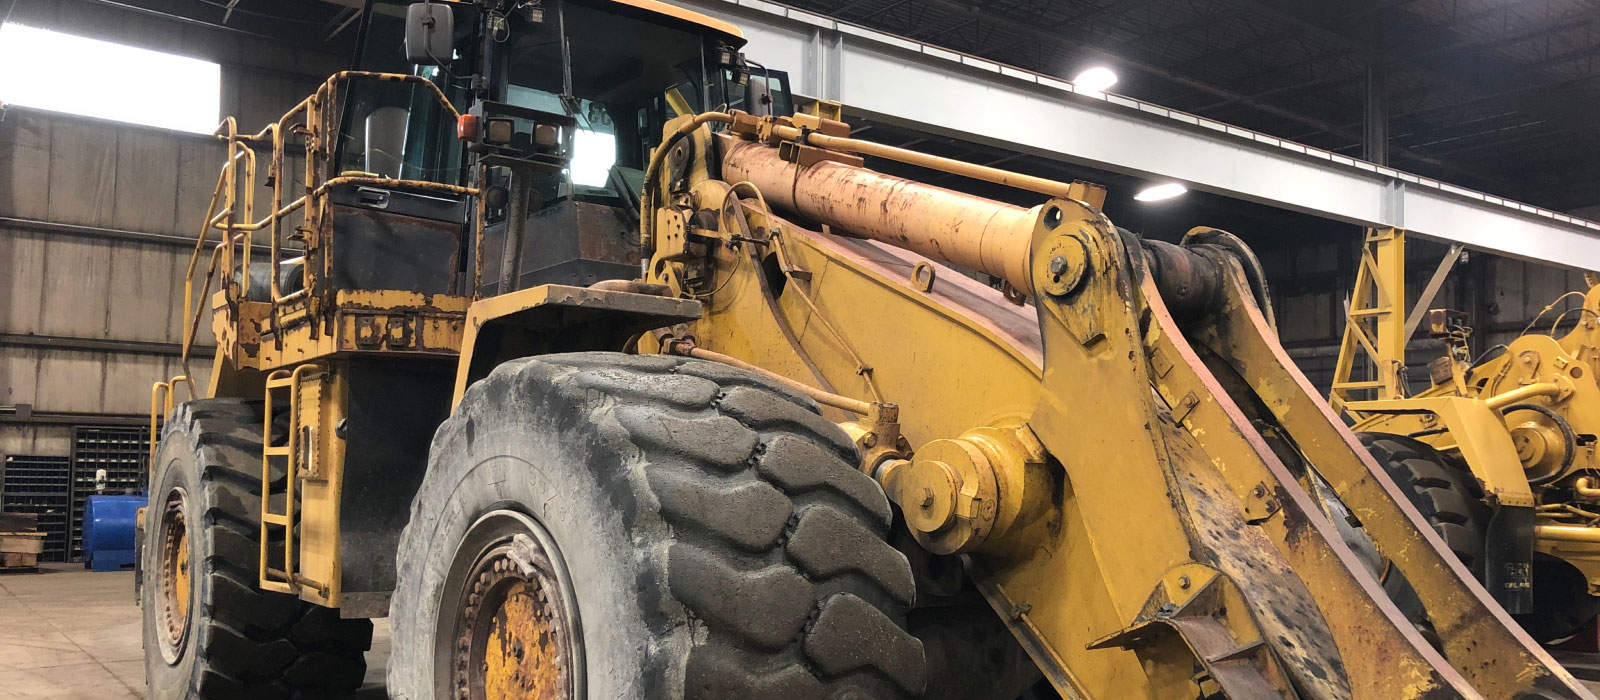 A Glance At The Initial Heavy Equipment Rebuild Process At Bulk Equipment Corp.